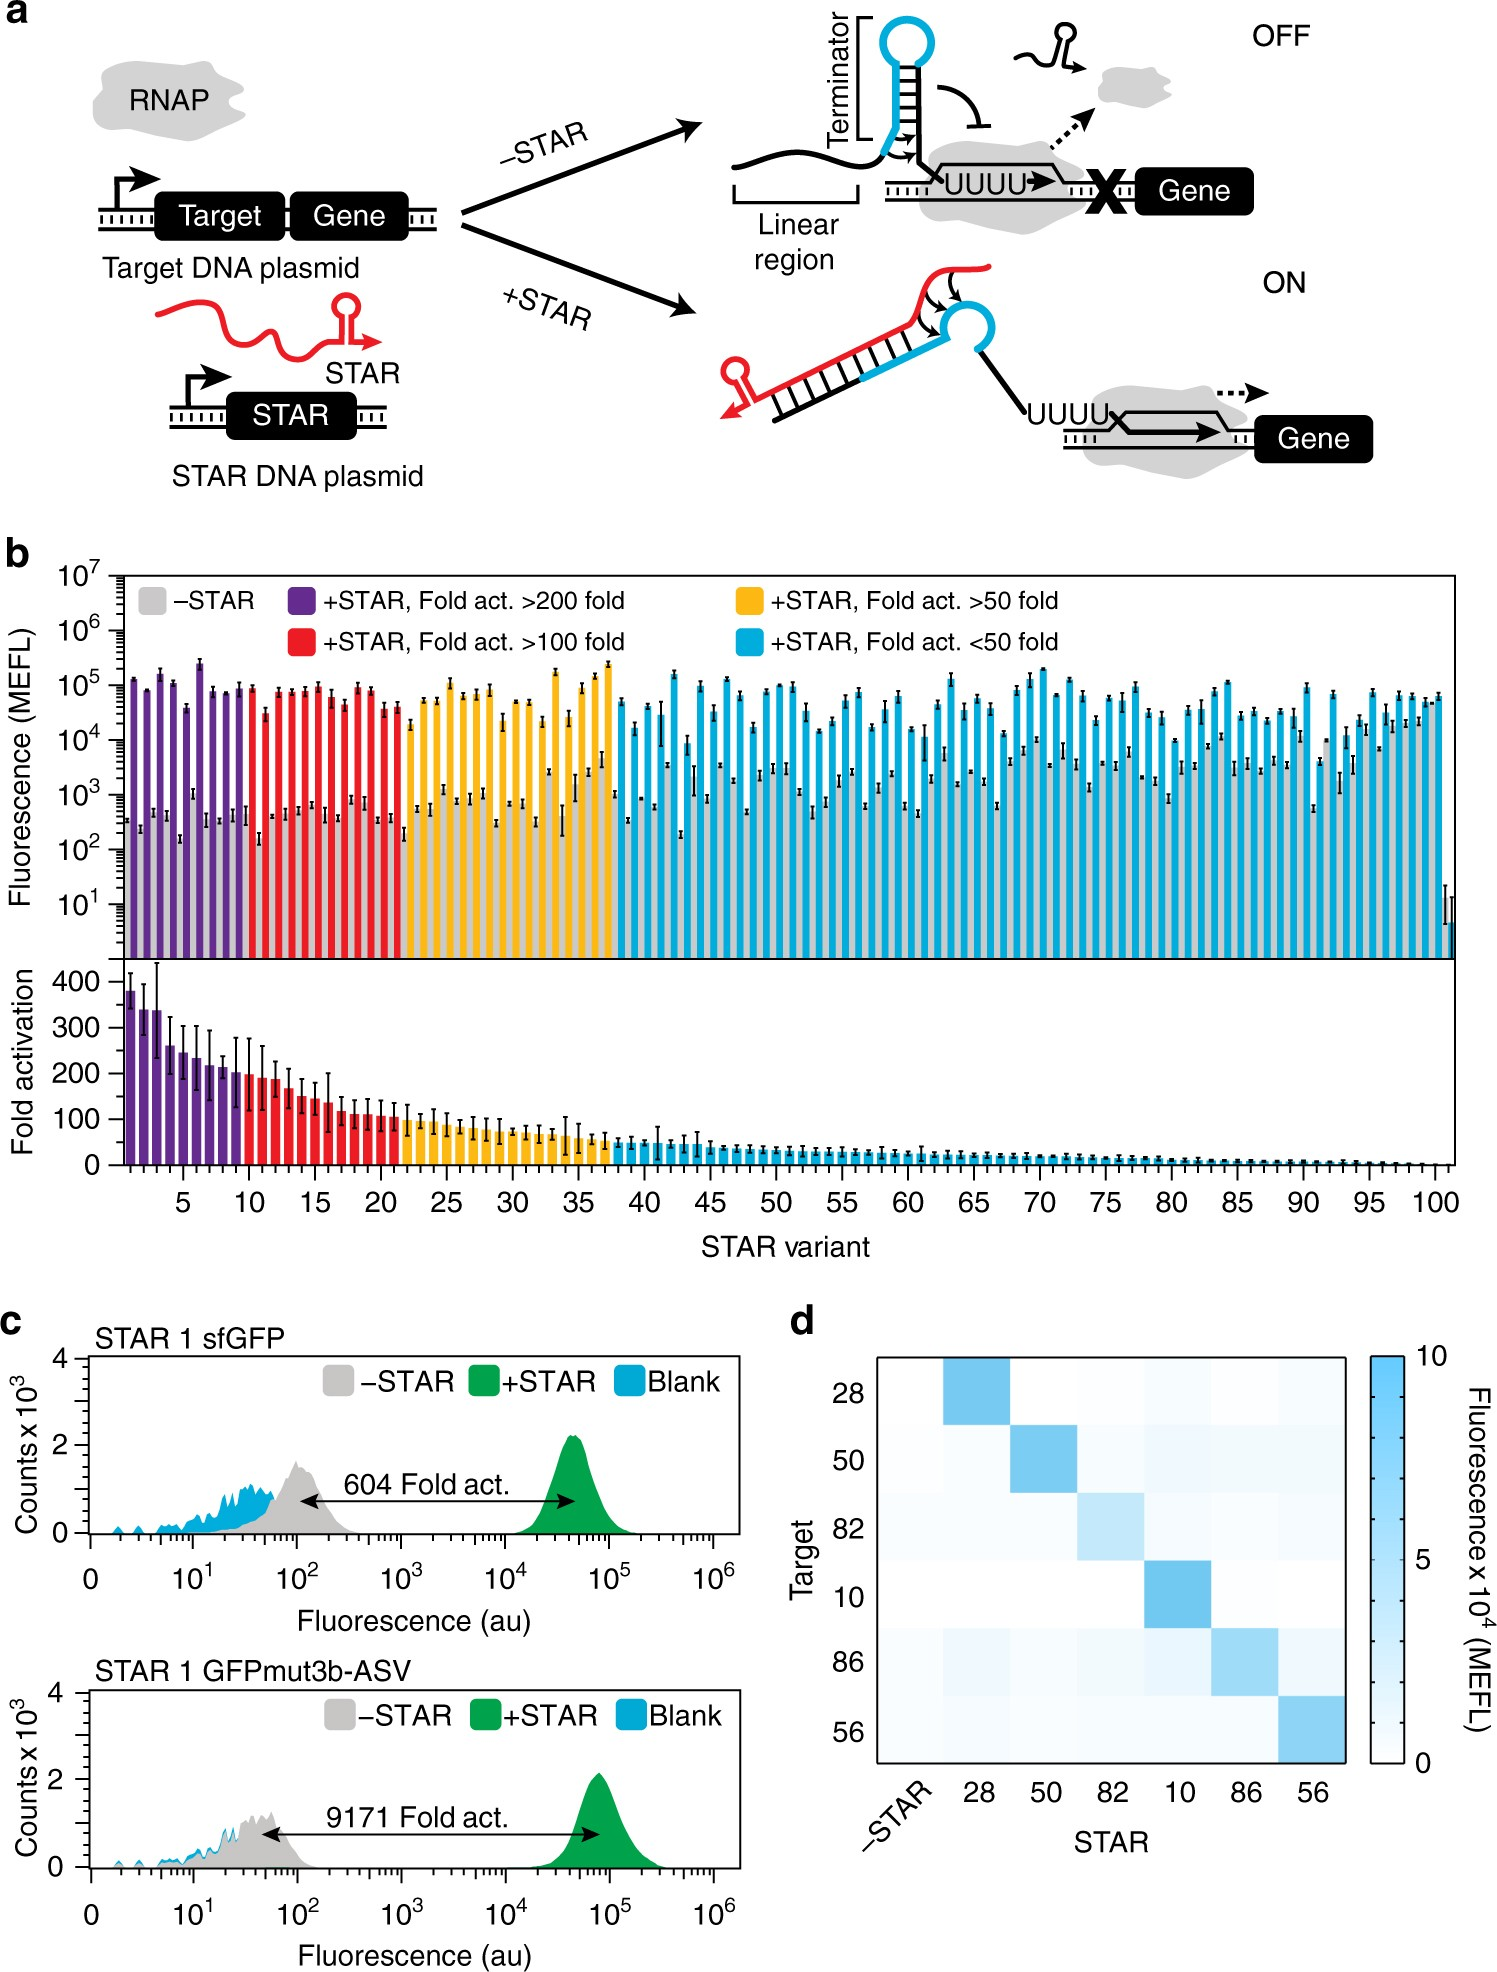 Computational Design Of Small Transcription Activating Rnas For Pool Cover Star Switch Wiring Diagram Versatile And Dynamic Gene Regulation Nature Communications